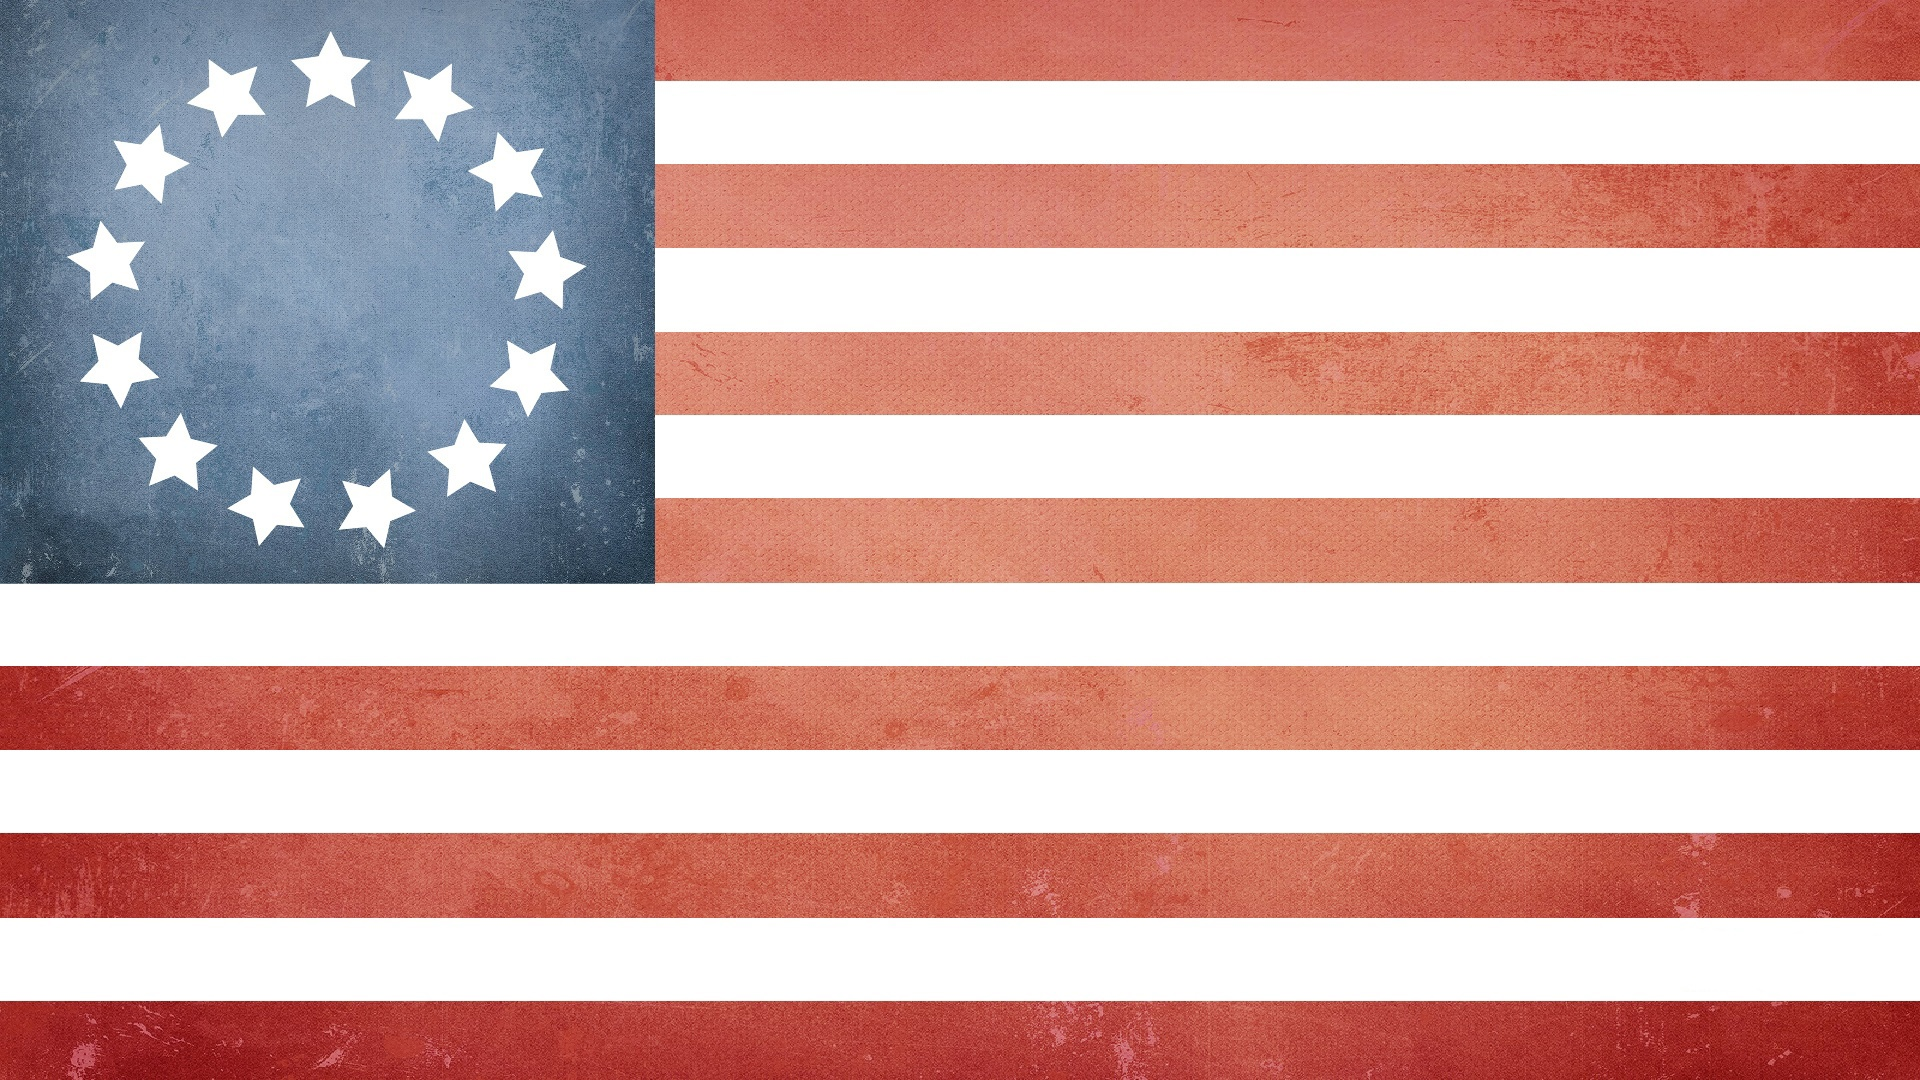 Image Old USA Flagjpg Made Up Characters Wiki FANDOM - How old is the united states of america